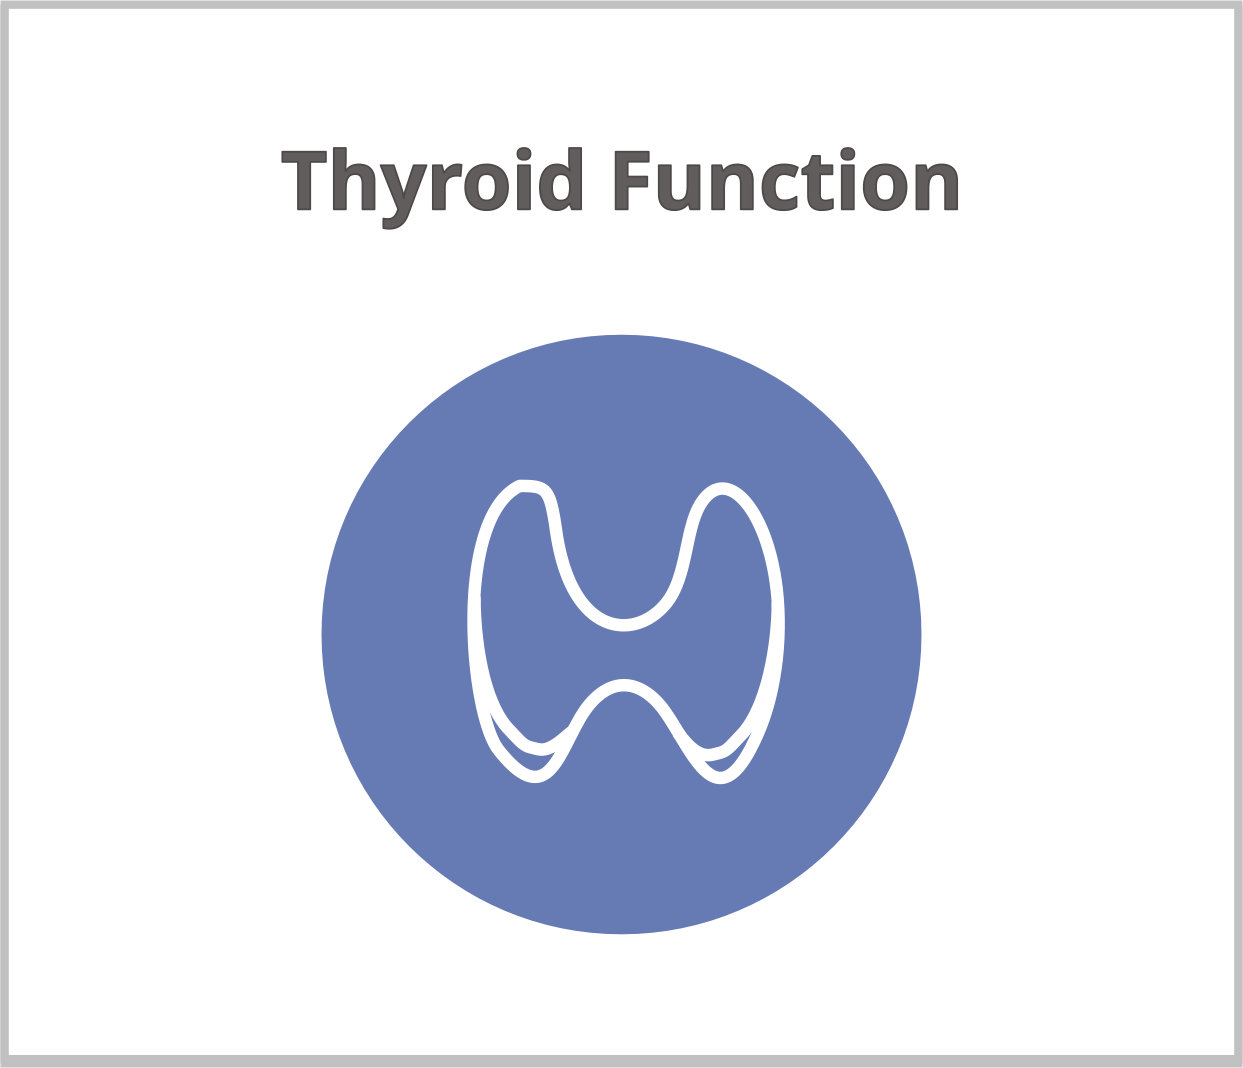 6 thyroid